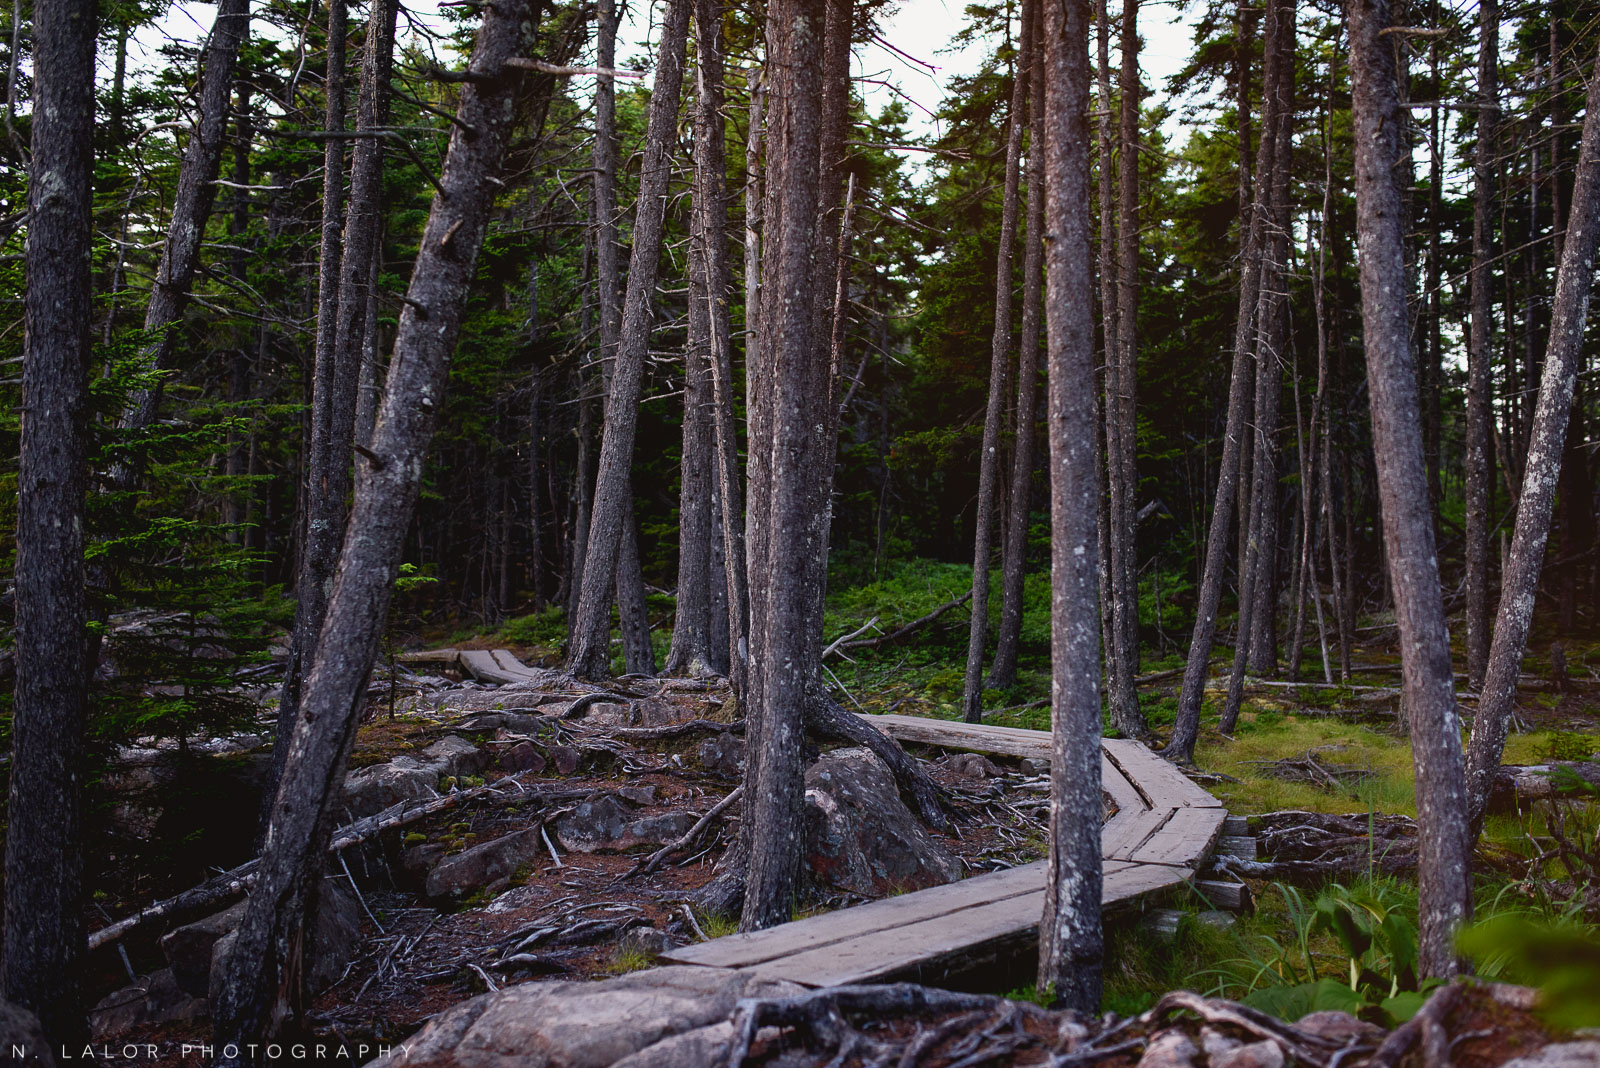 Wooden boardwalk on a hiking trail. Acadia National Park in Bar Harbor Maine. Photo by N Lalor Photography.